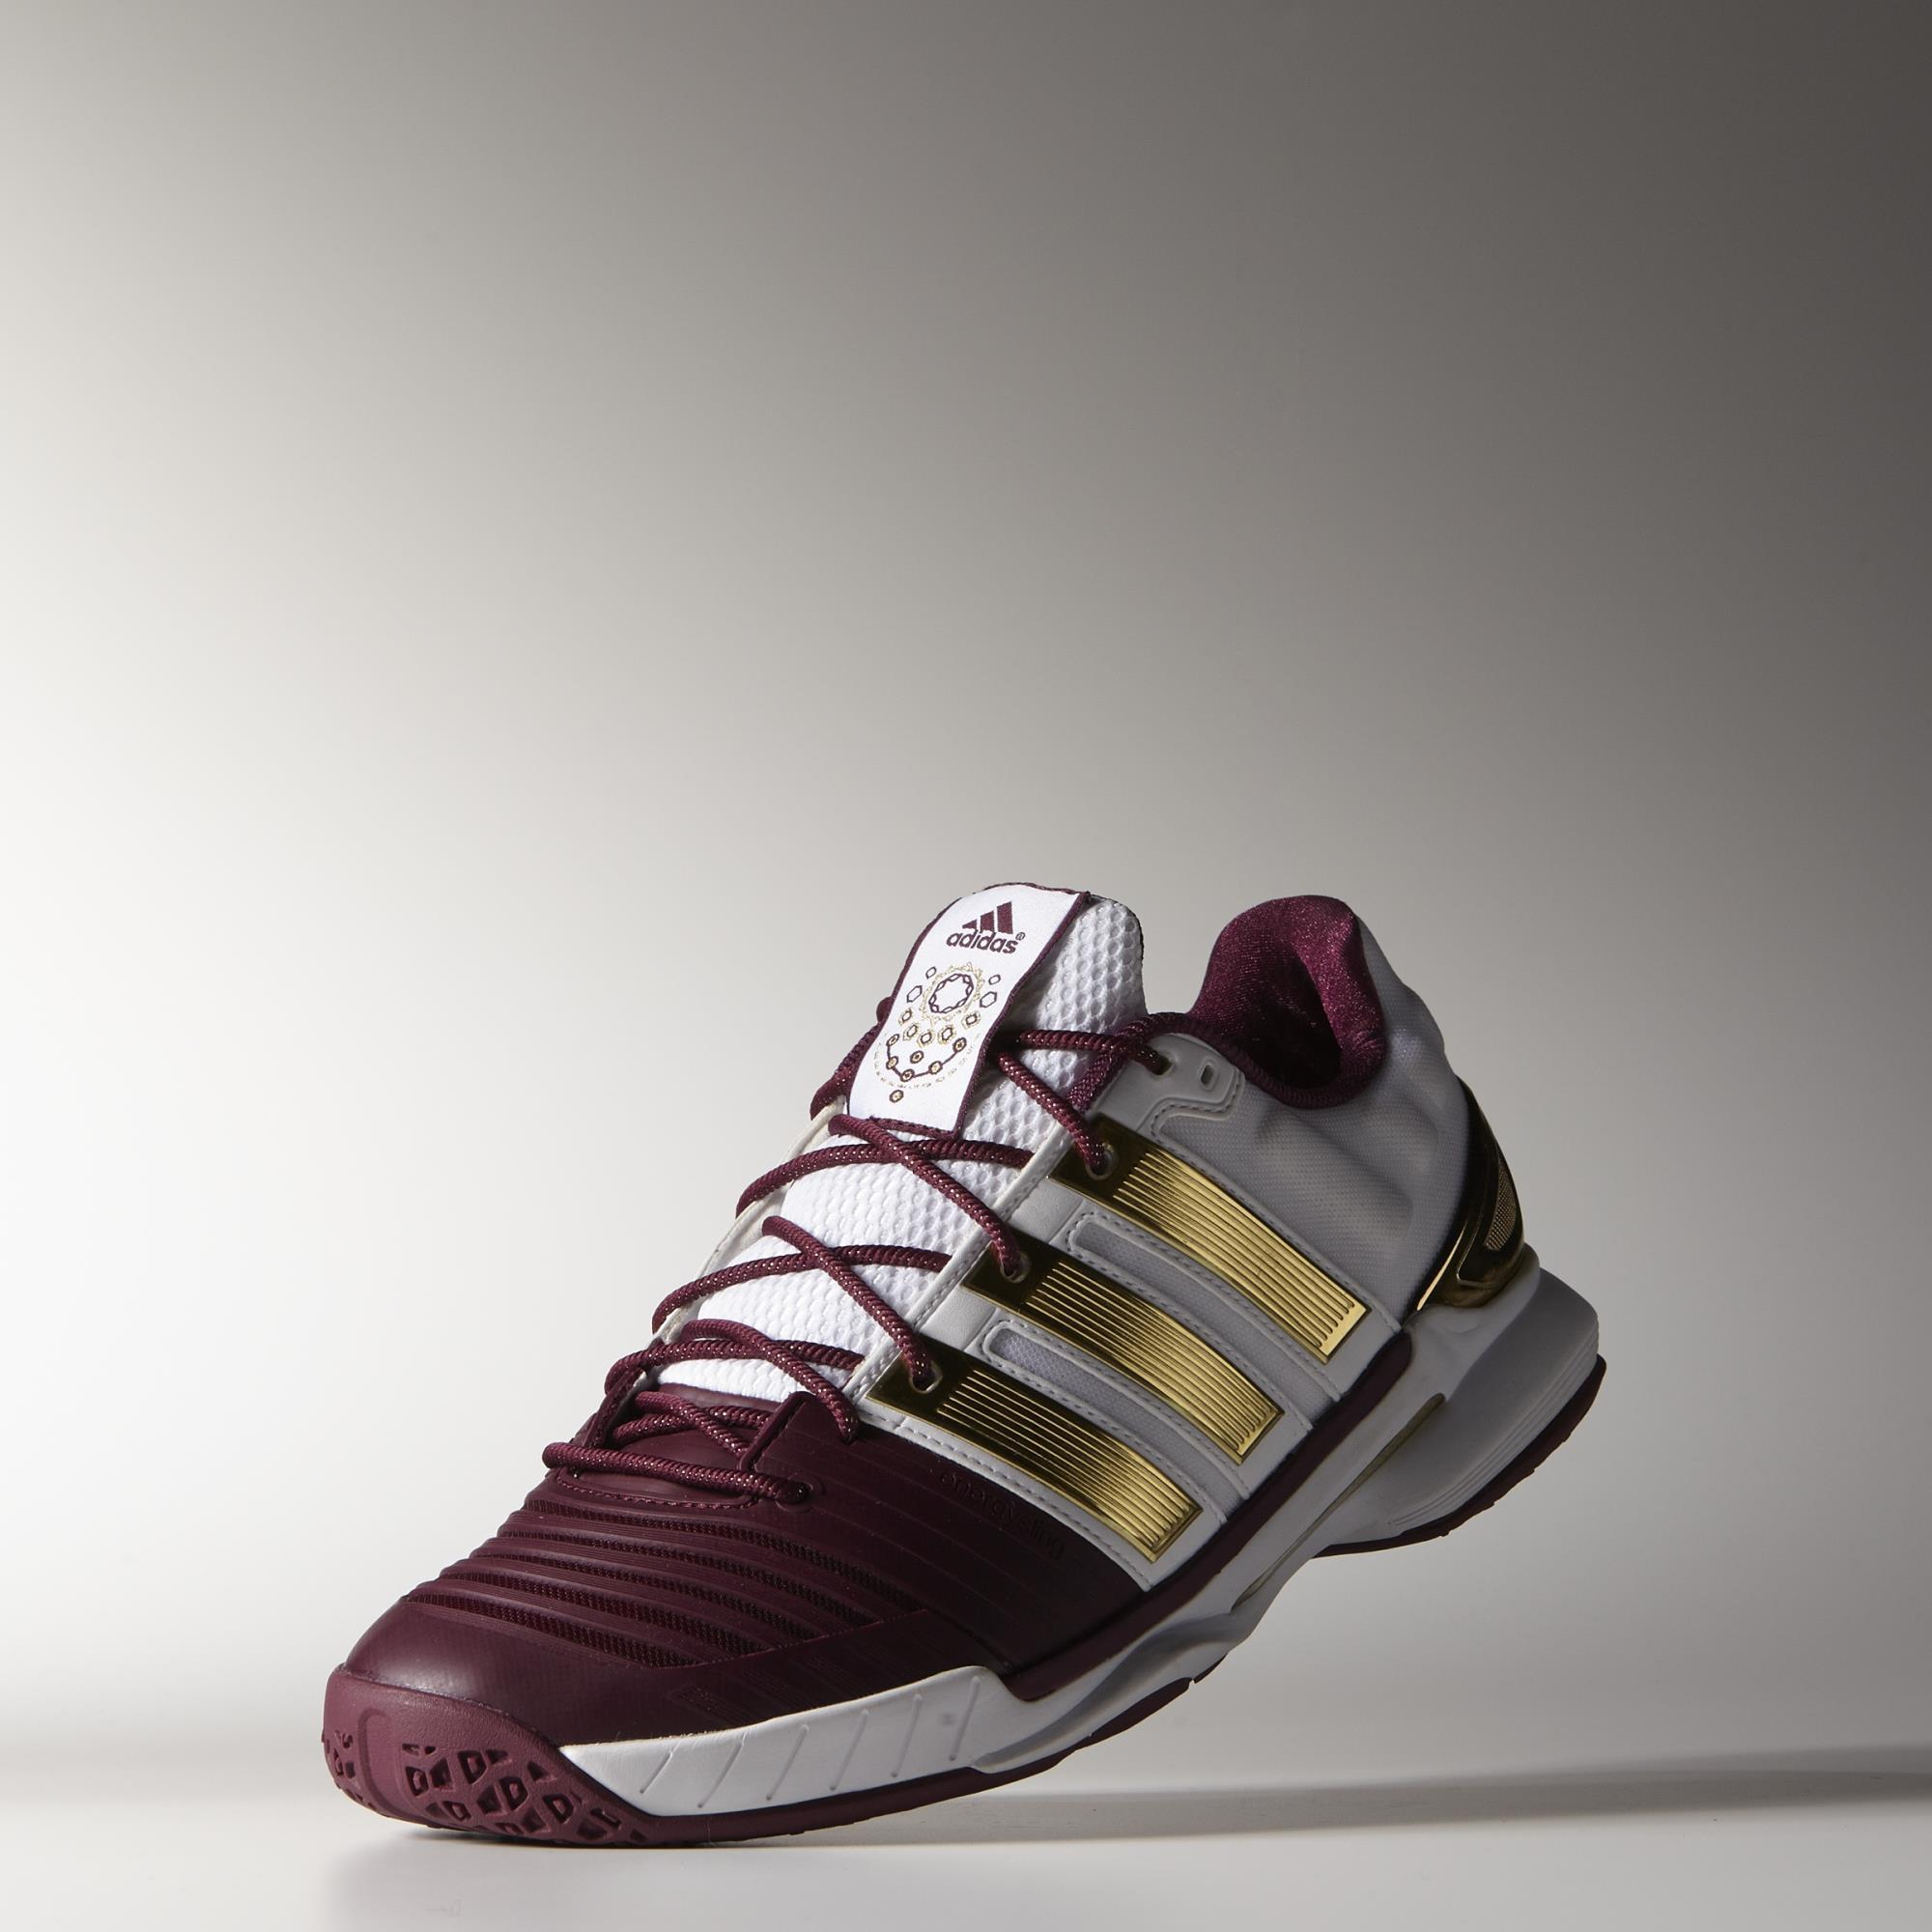 Adidas Tennis Shoes Limited Edition